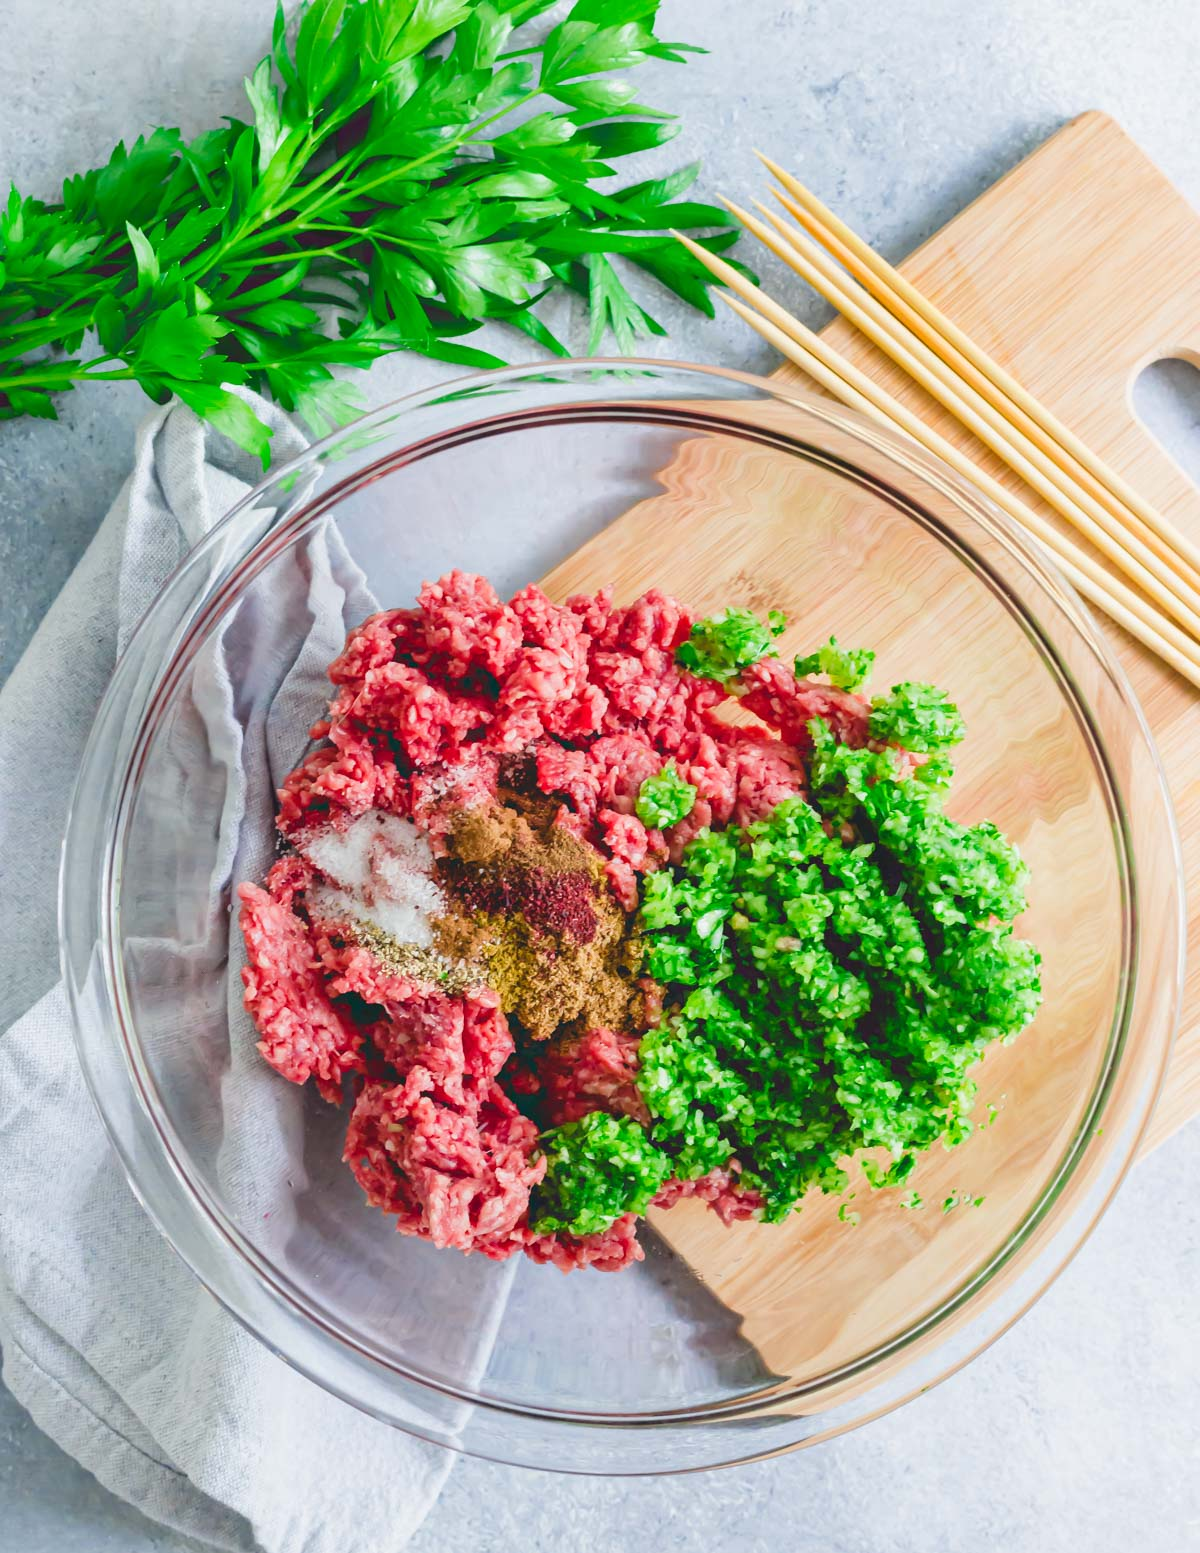 Ground beef in a mixing bowl with parsley, onion and garlic mince and spices to make beef kafta kabobs.